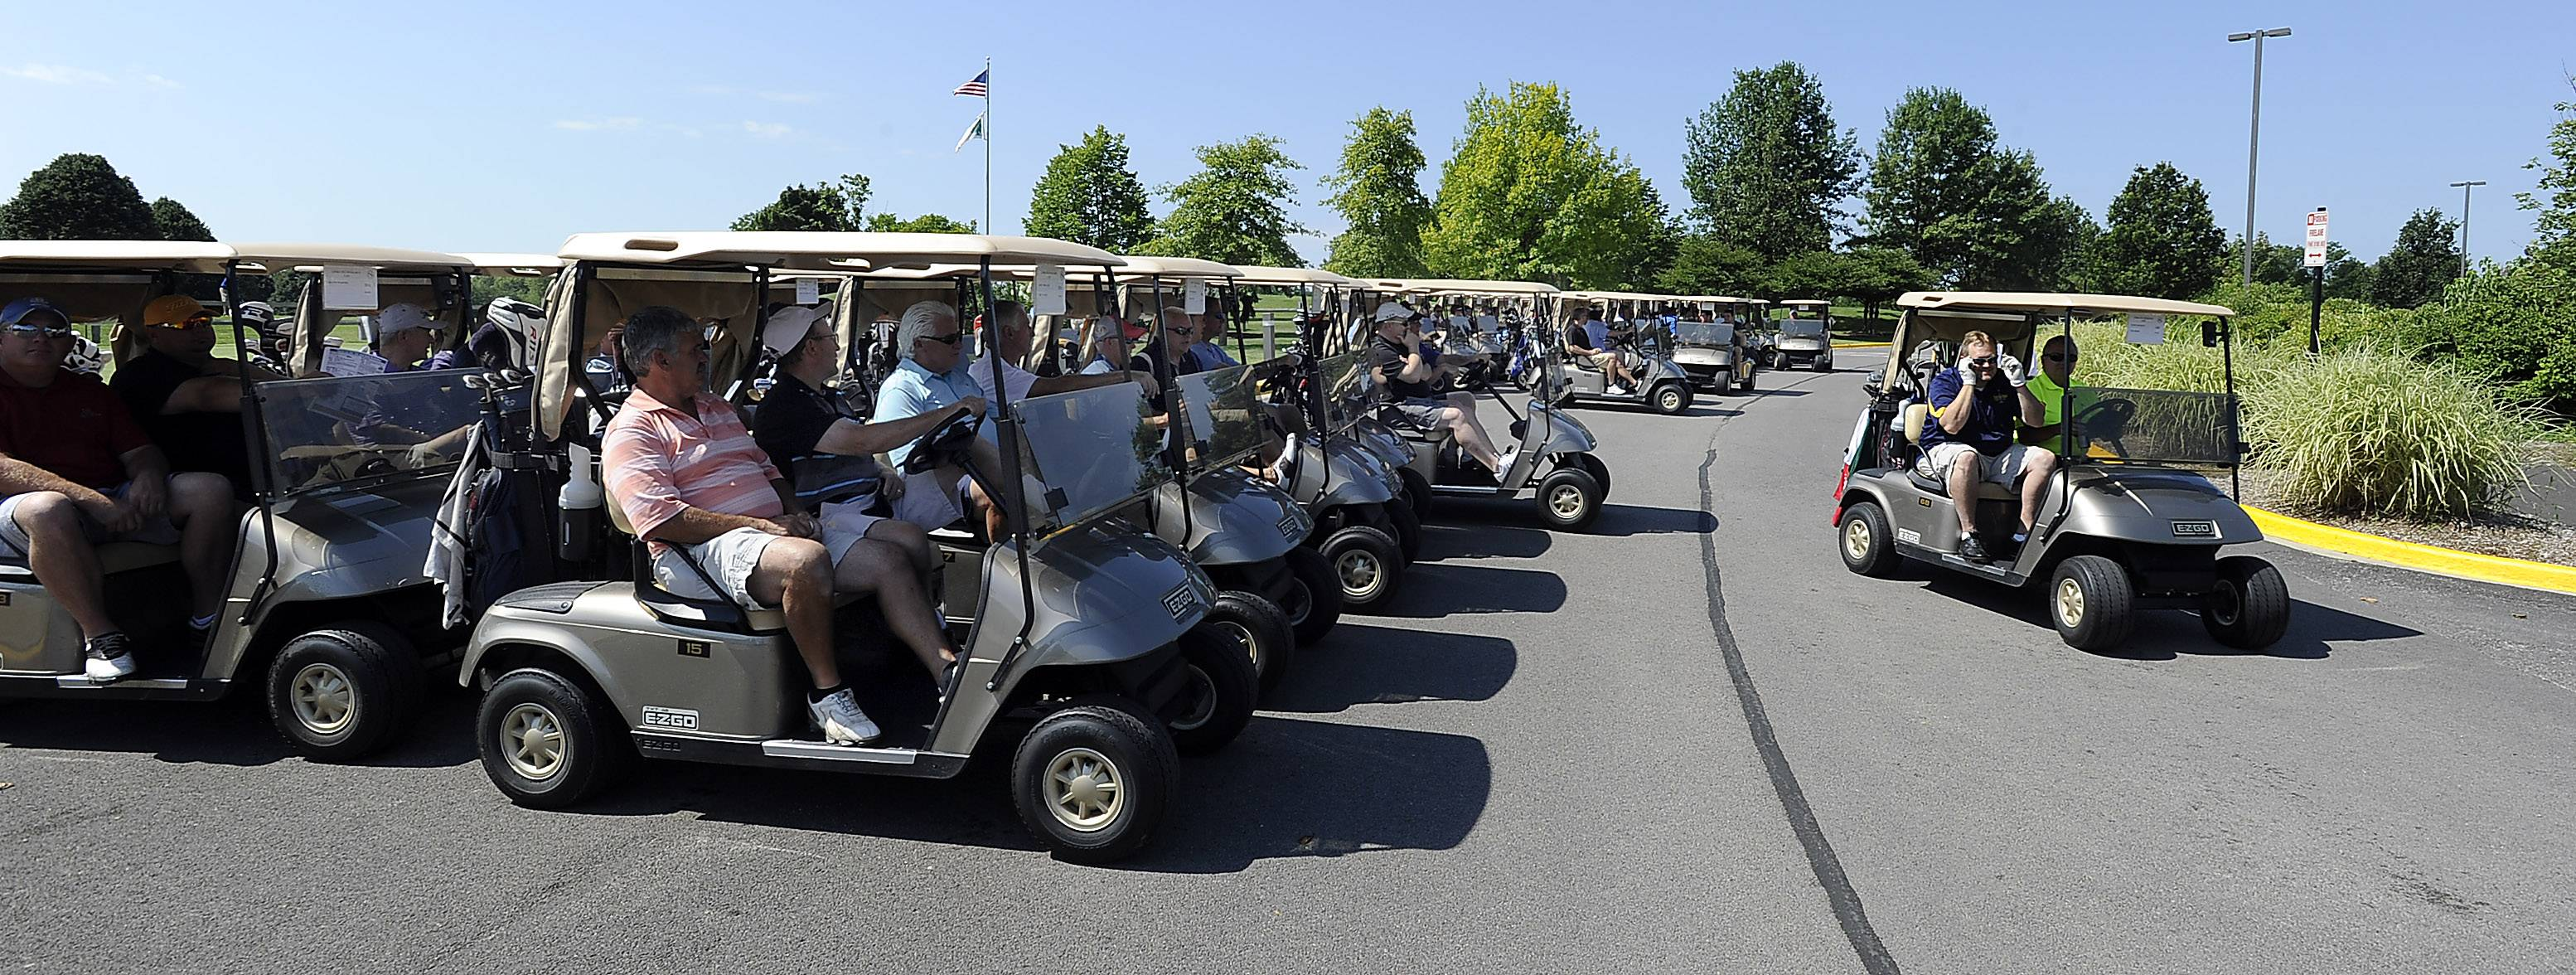 Golfers head out for 18 holes Wednesday at the Links Technology Cup, a park district fundraiser held at the Schaumburg Golf Club.